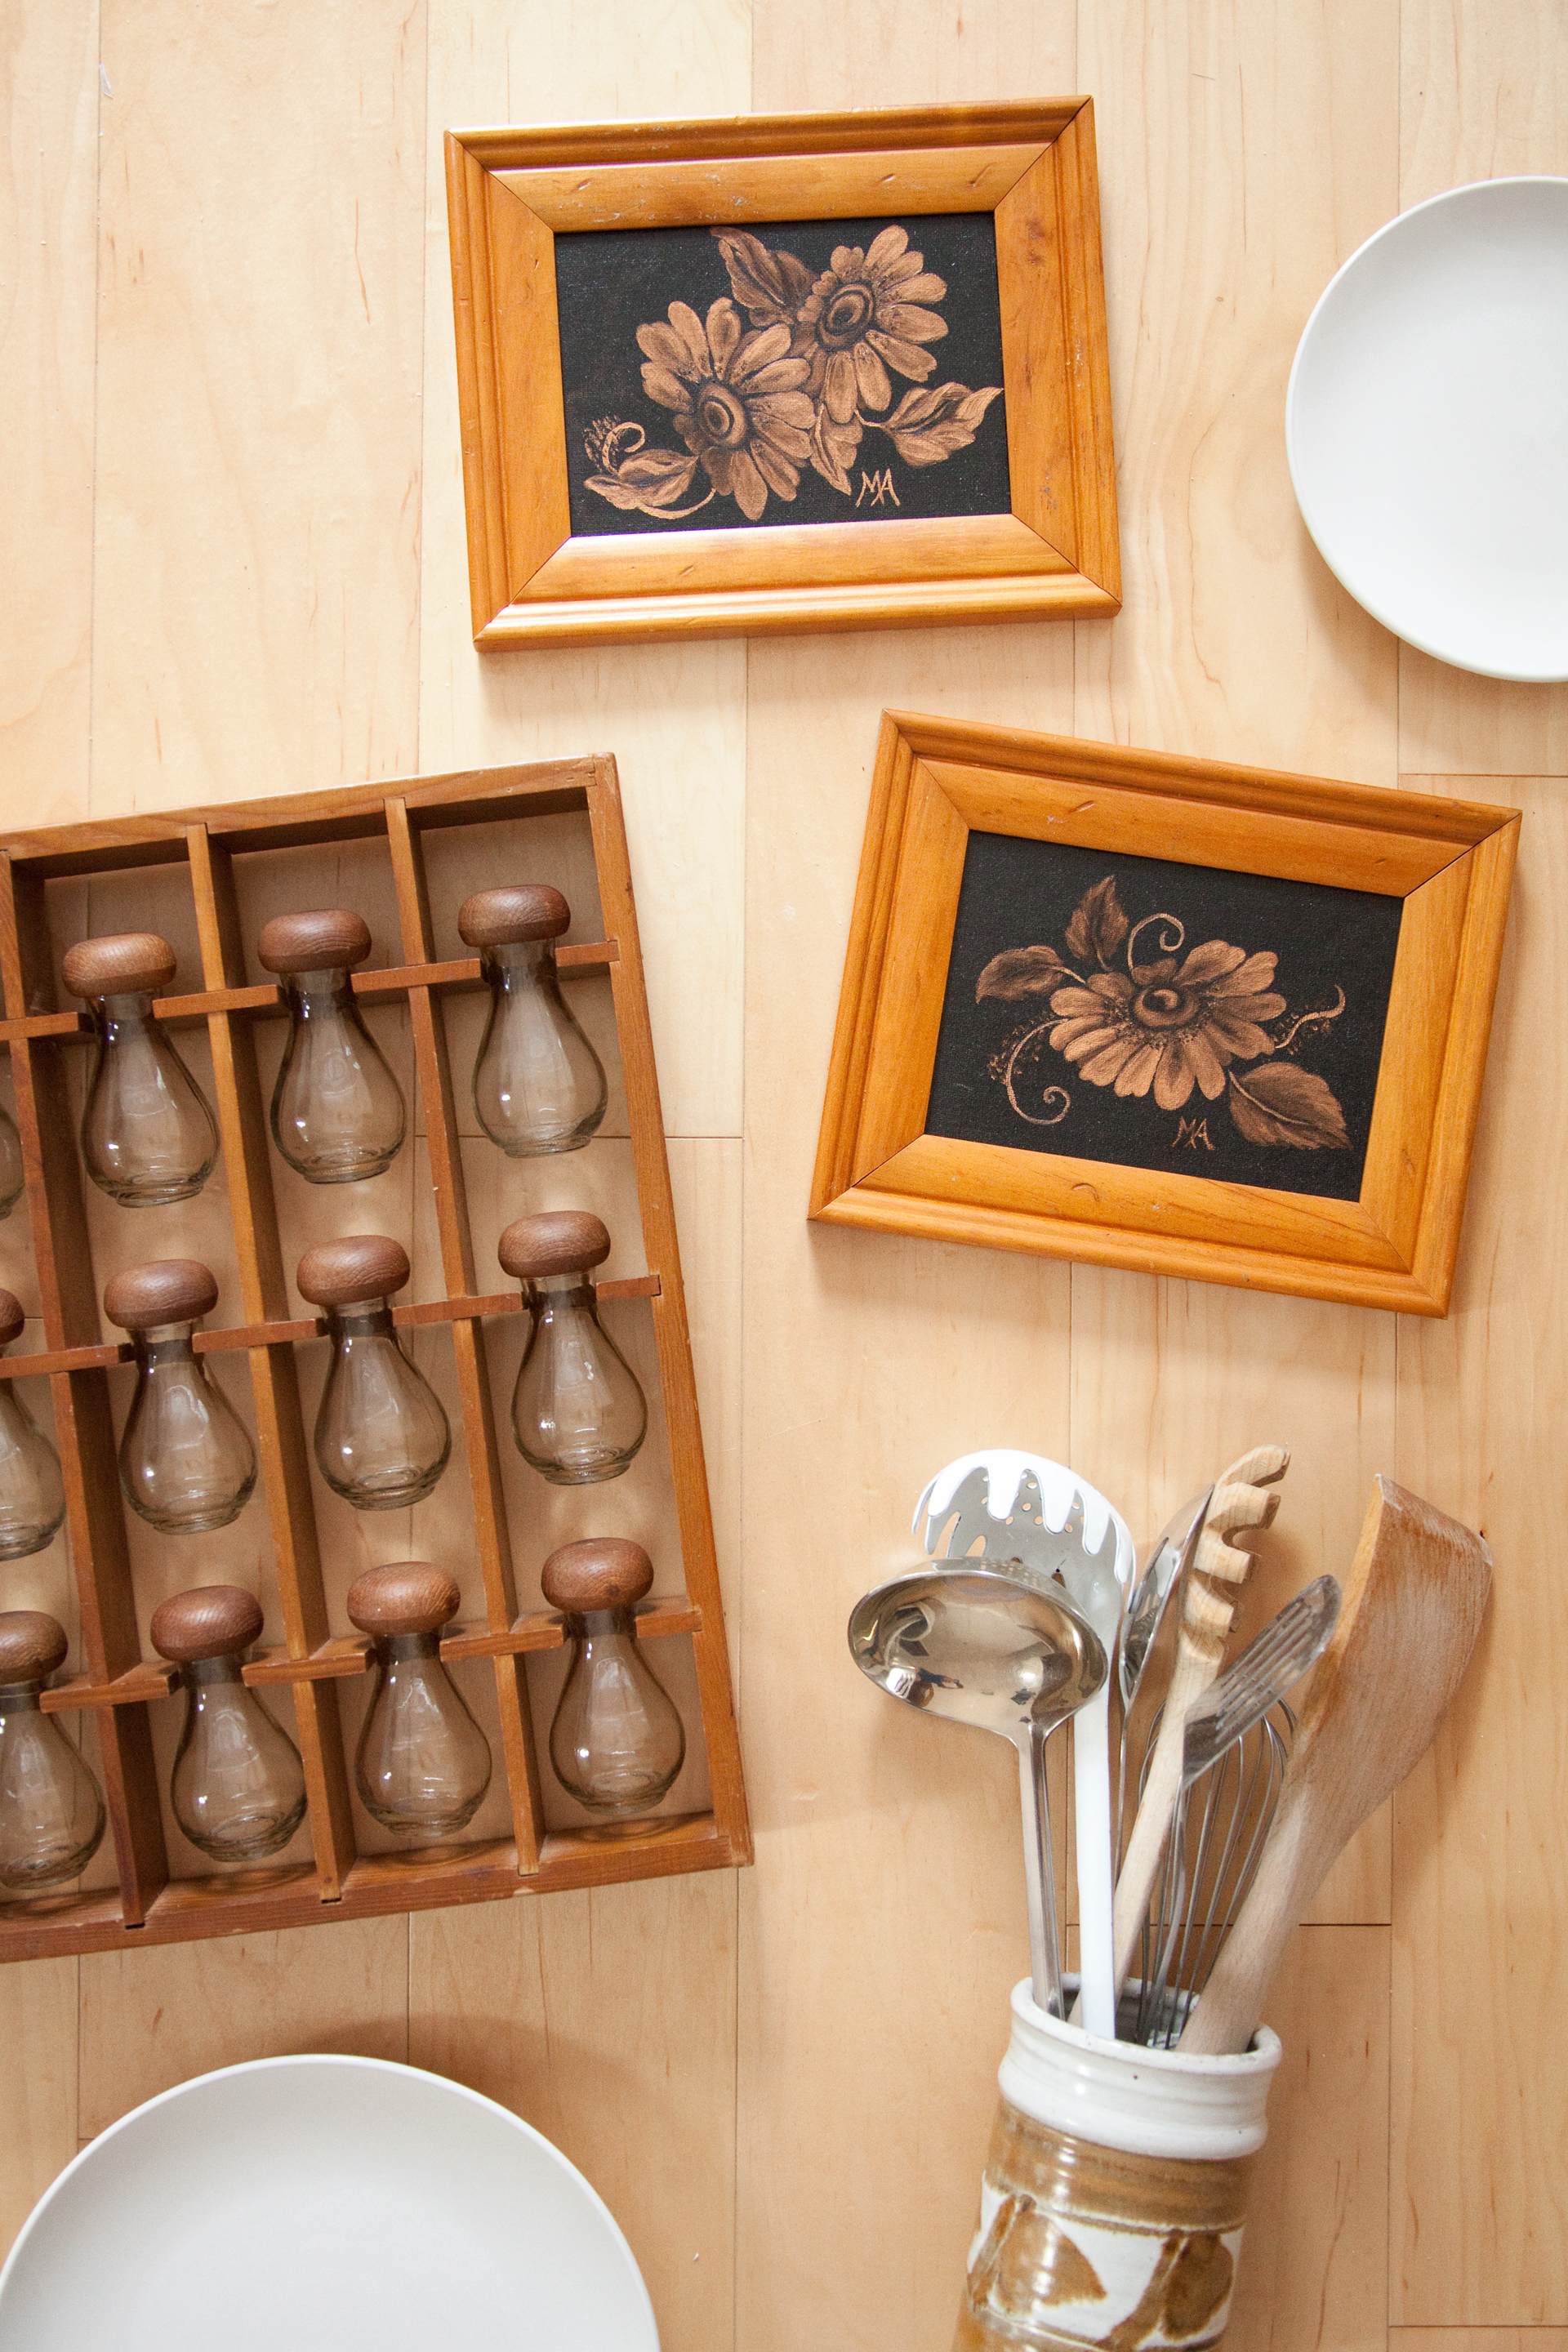 70s country kitchen accessories